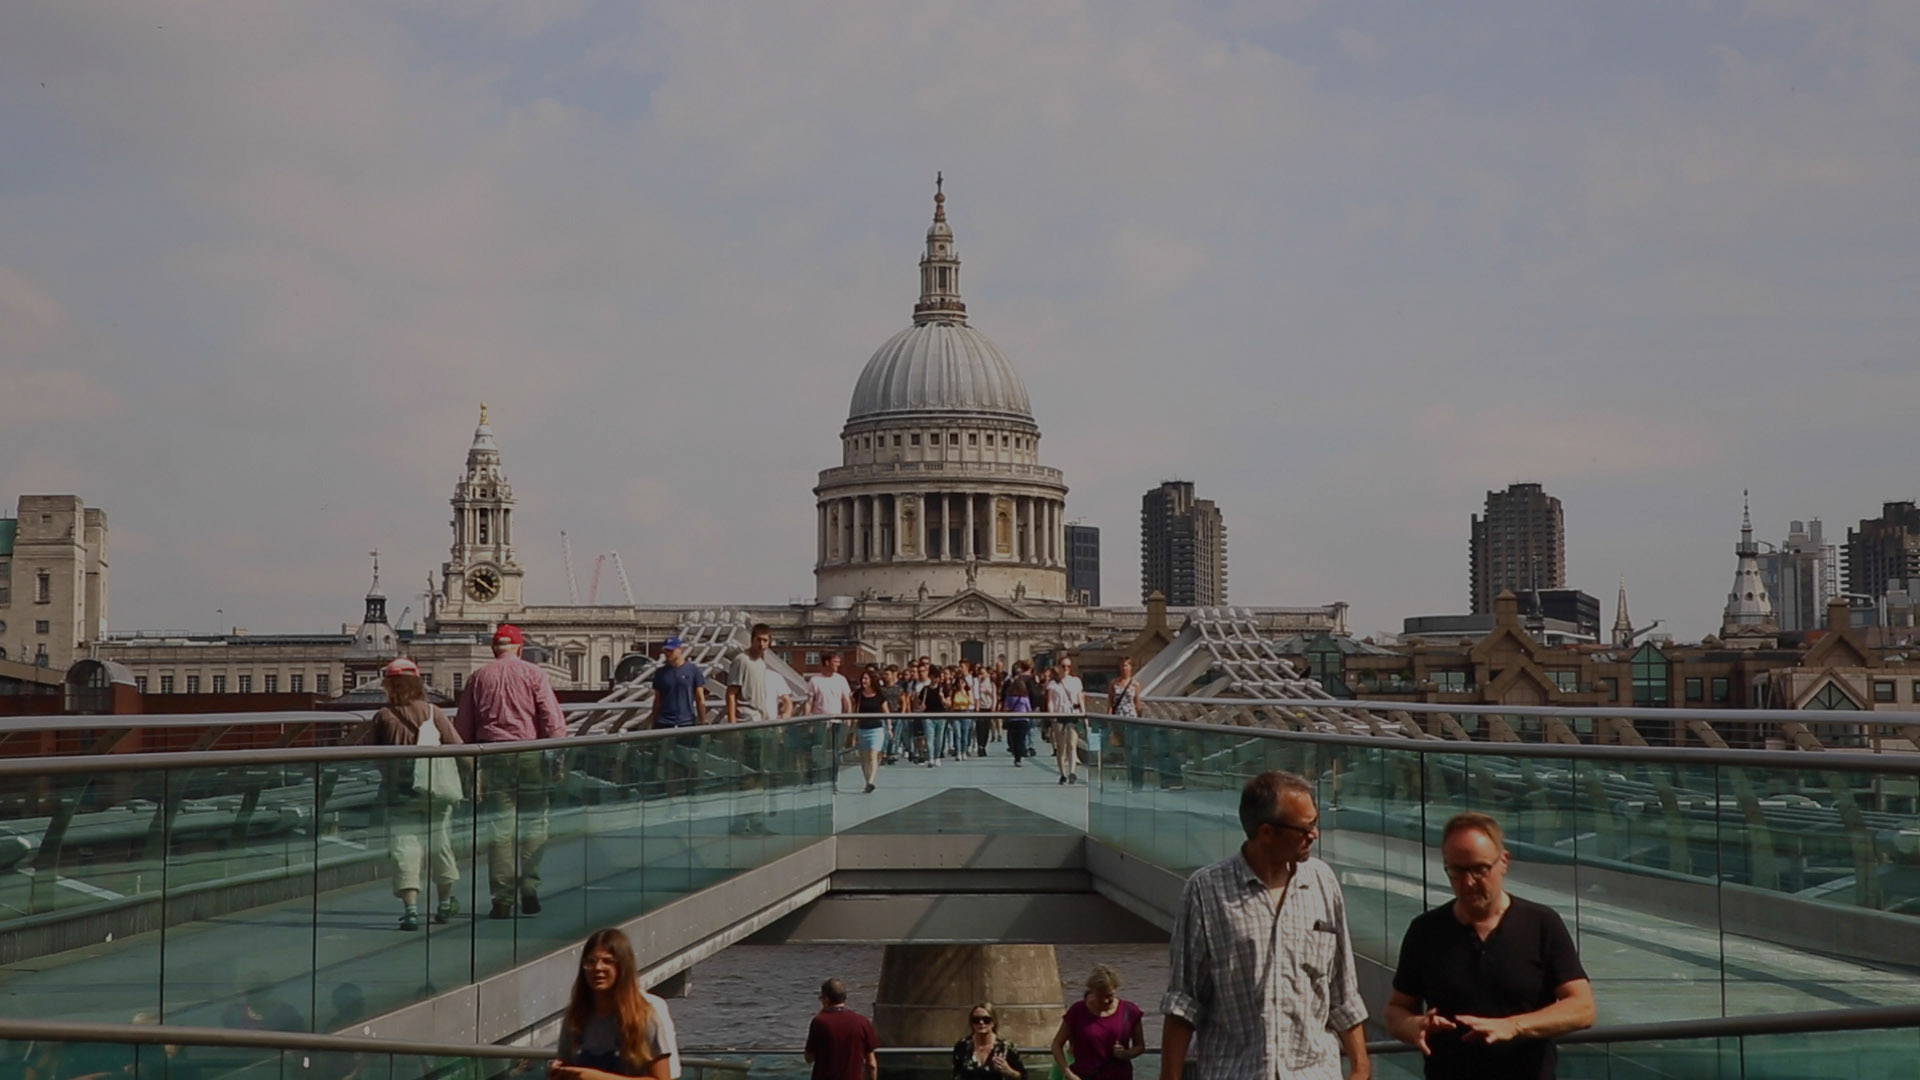 Header image. People walking over Millennium Bridge with Paul's Cathedral in the background